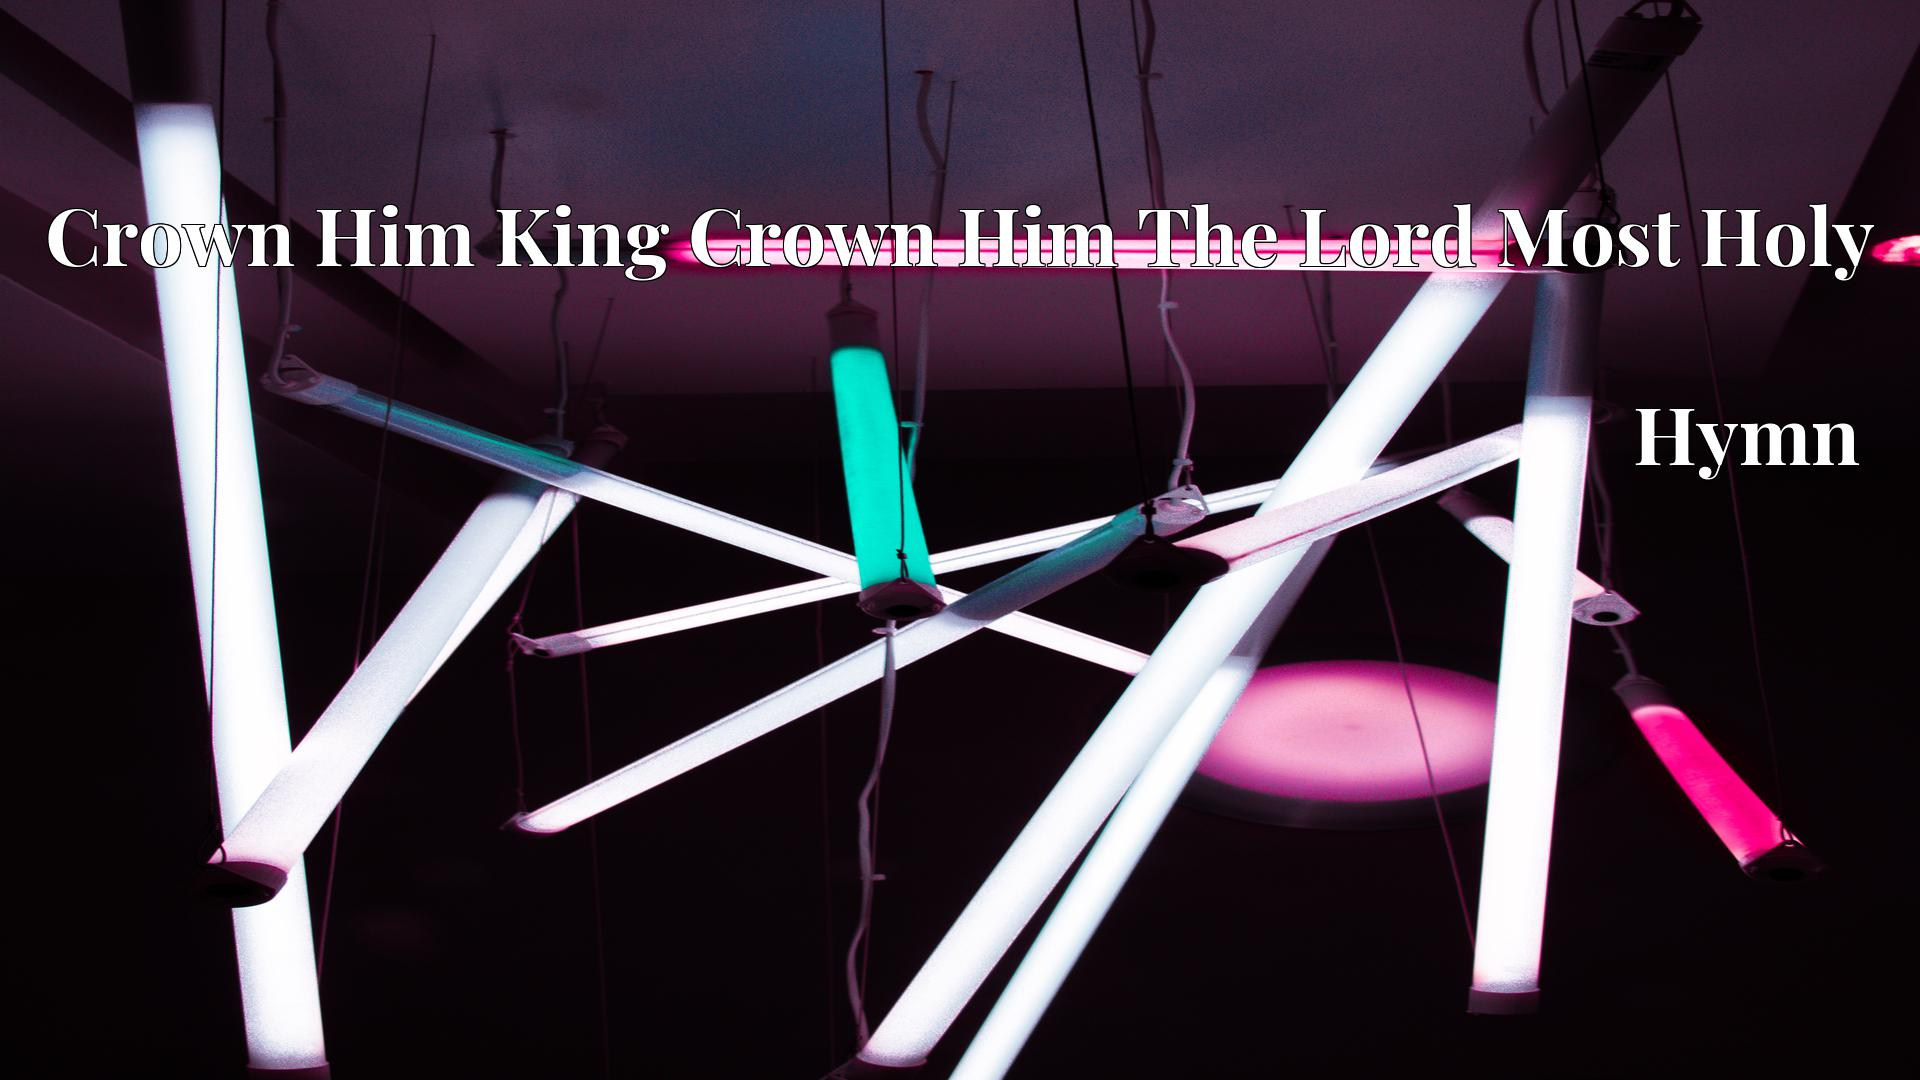 Crown Him King Crown Him The Lord Most Holy - Hymn